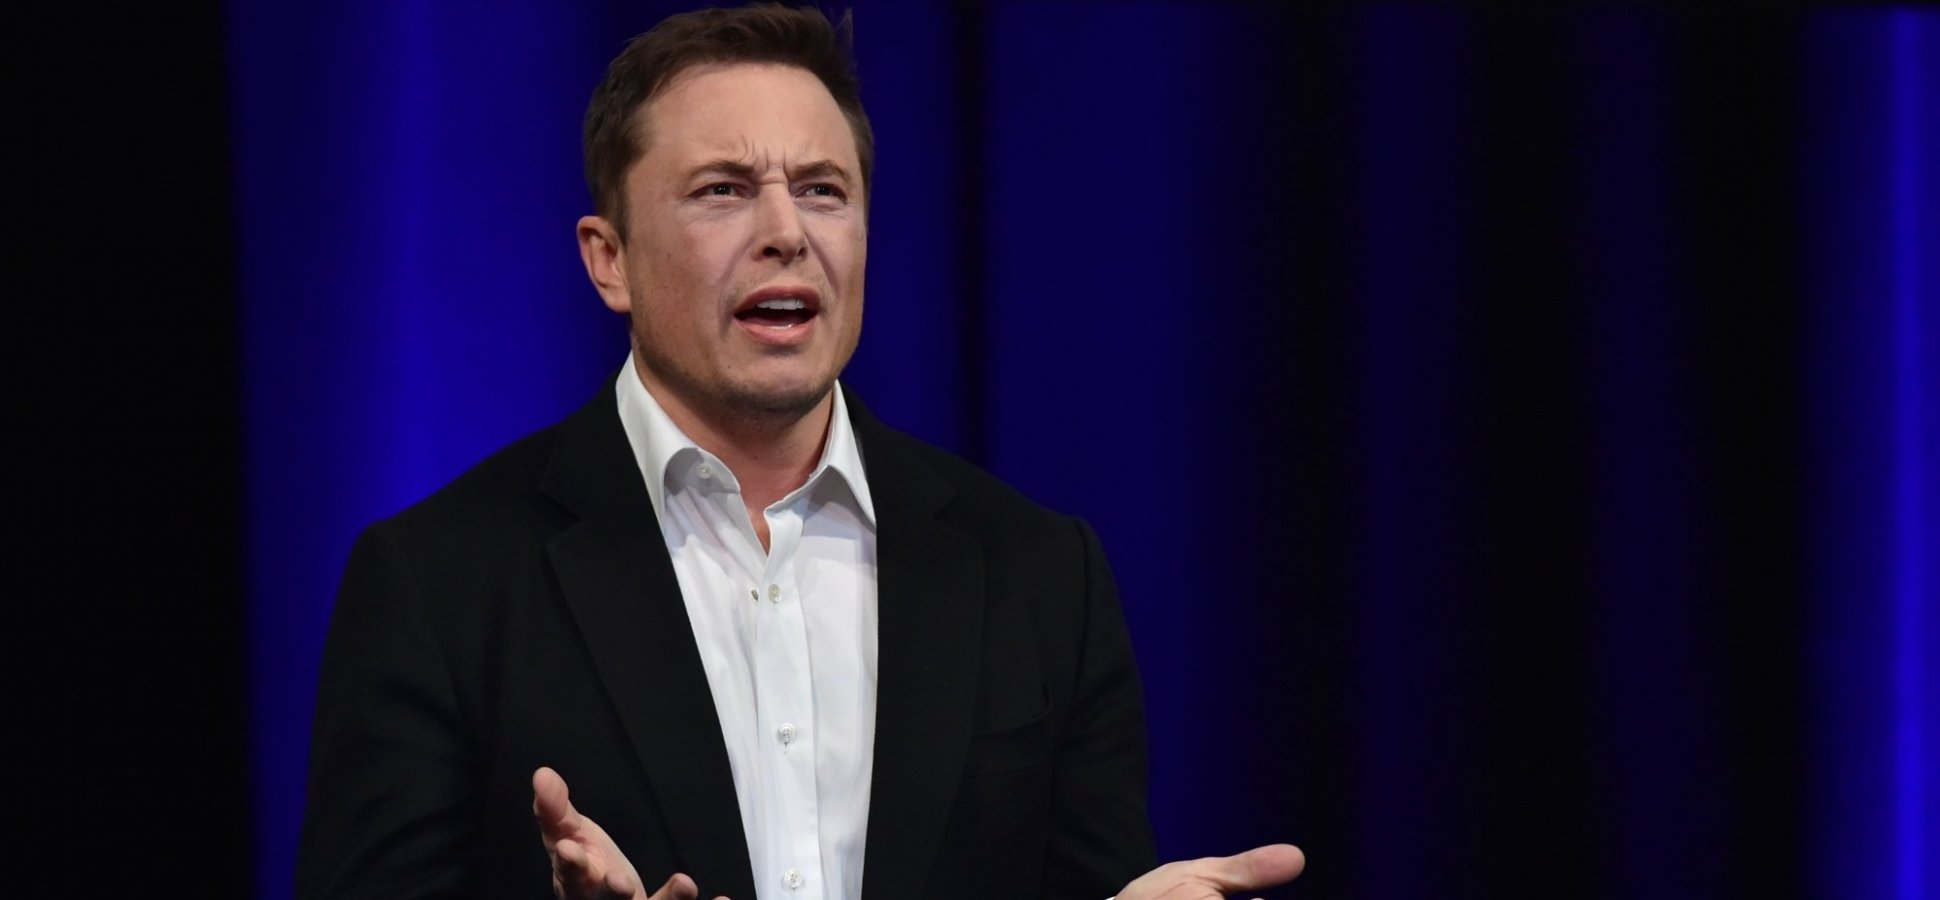 Elon Musk Just Stood on Stage and Revealed His Higher Motivation (It's a Lesson For All Leaders)